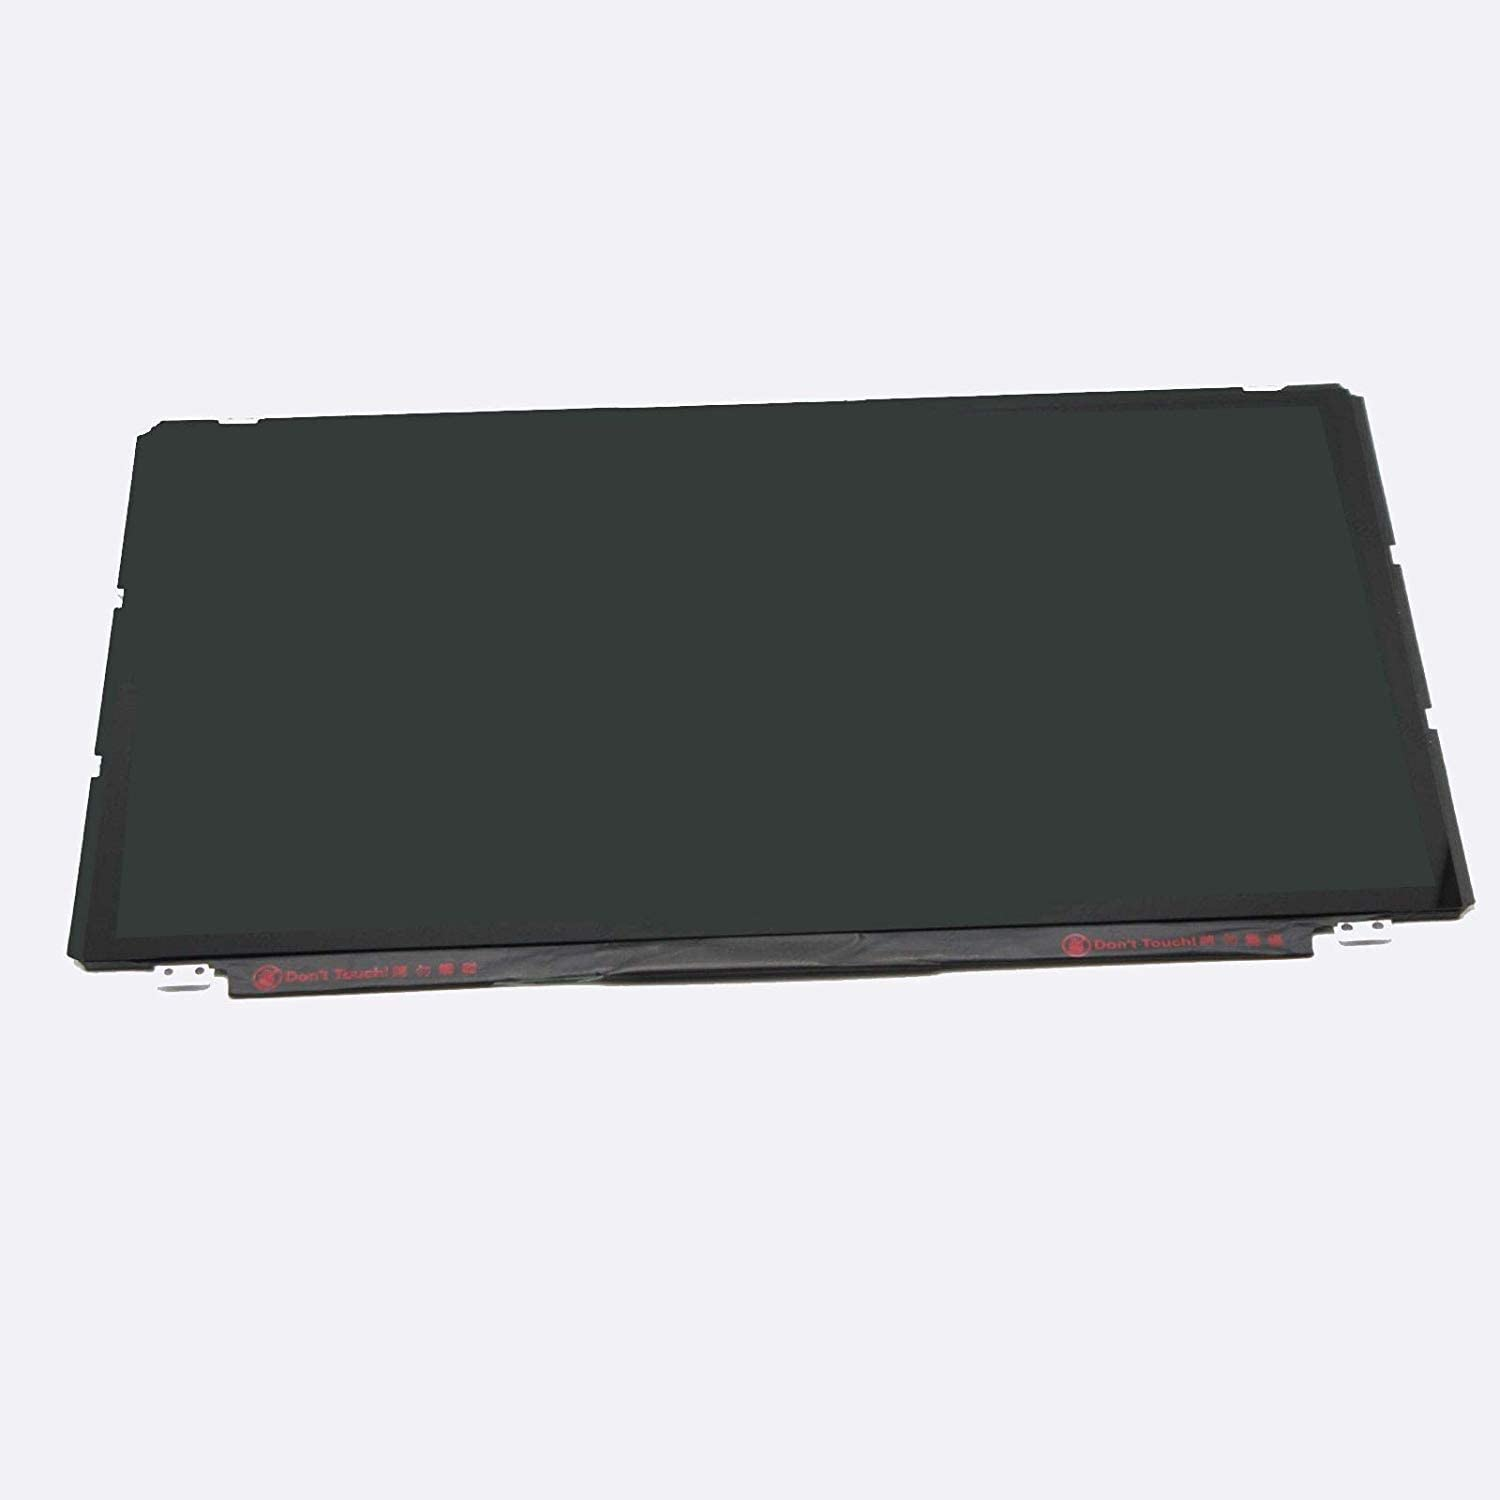 """Bblon 15.6"""" 19201080 LCD Screen LED Touch Display Replacement for Dell Inspiron 7548"""